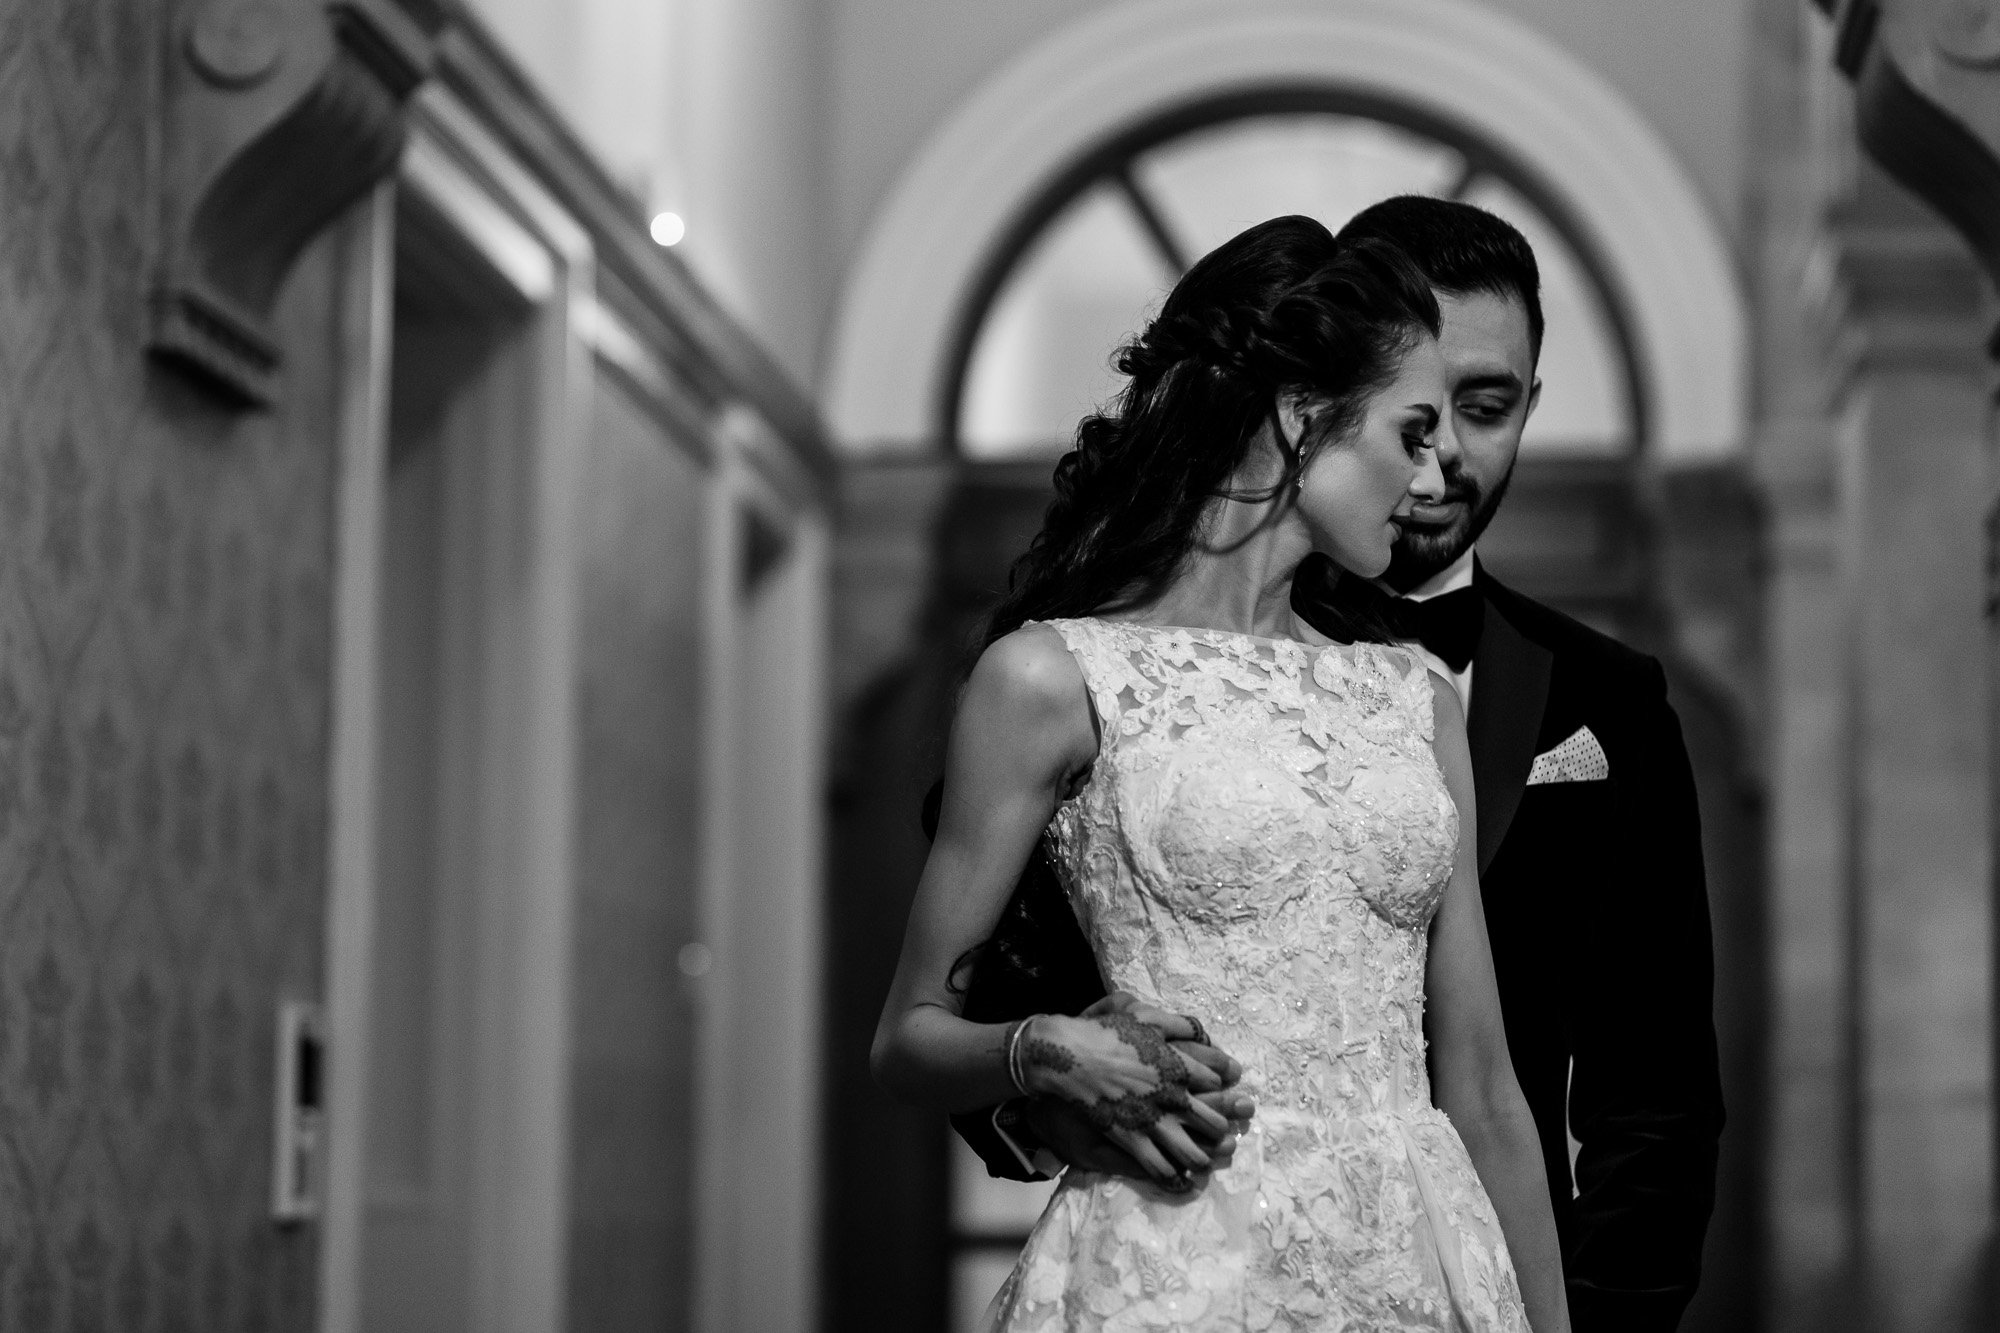 Heythrop Park Hotel, Oxfordshire, couples portraits